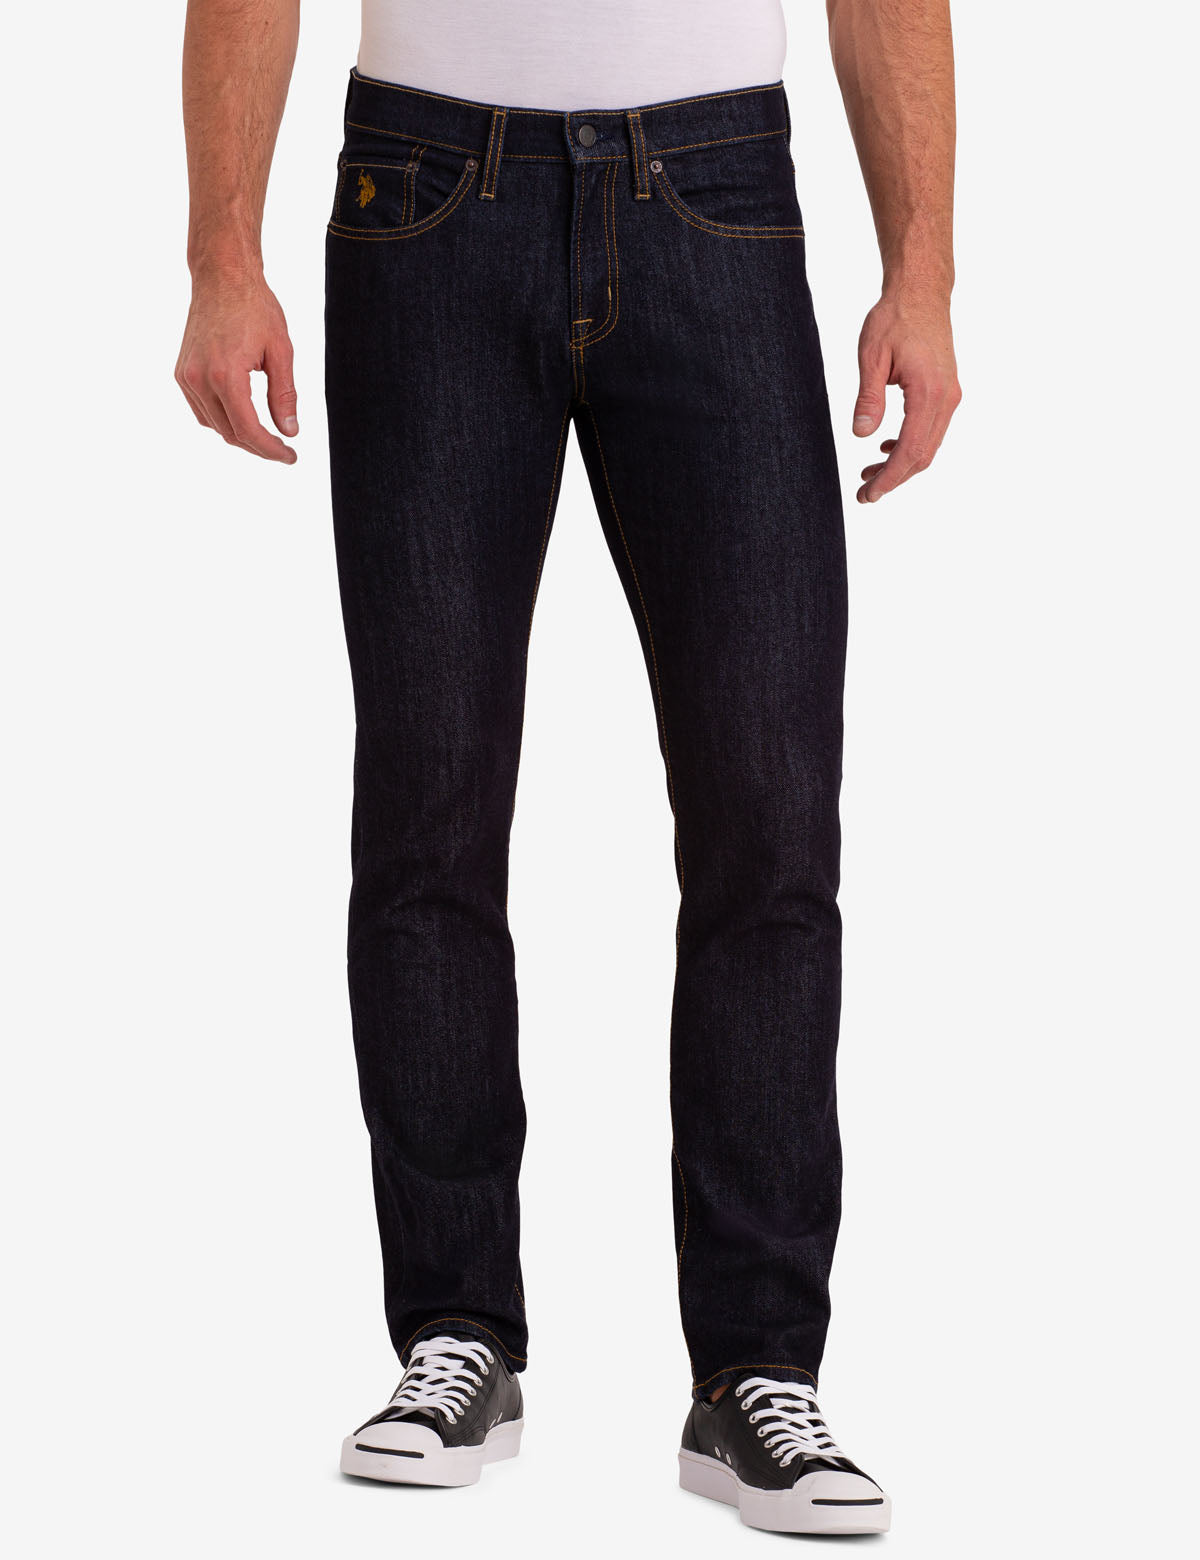 U.S. Polo Assn. - Mens Slim Fit Jeans